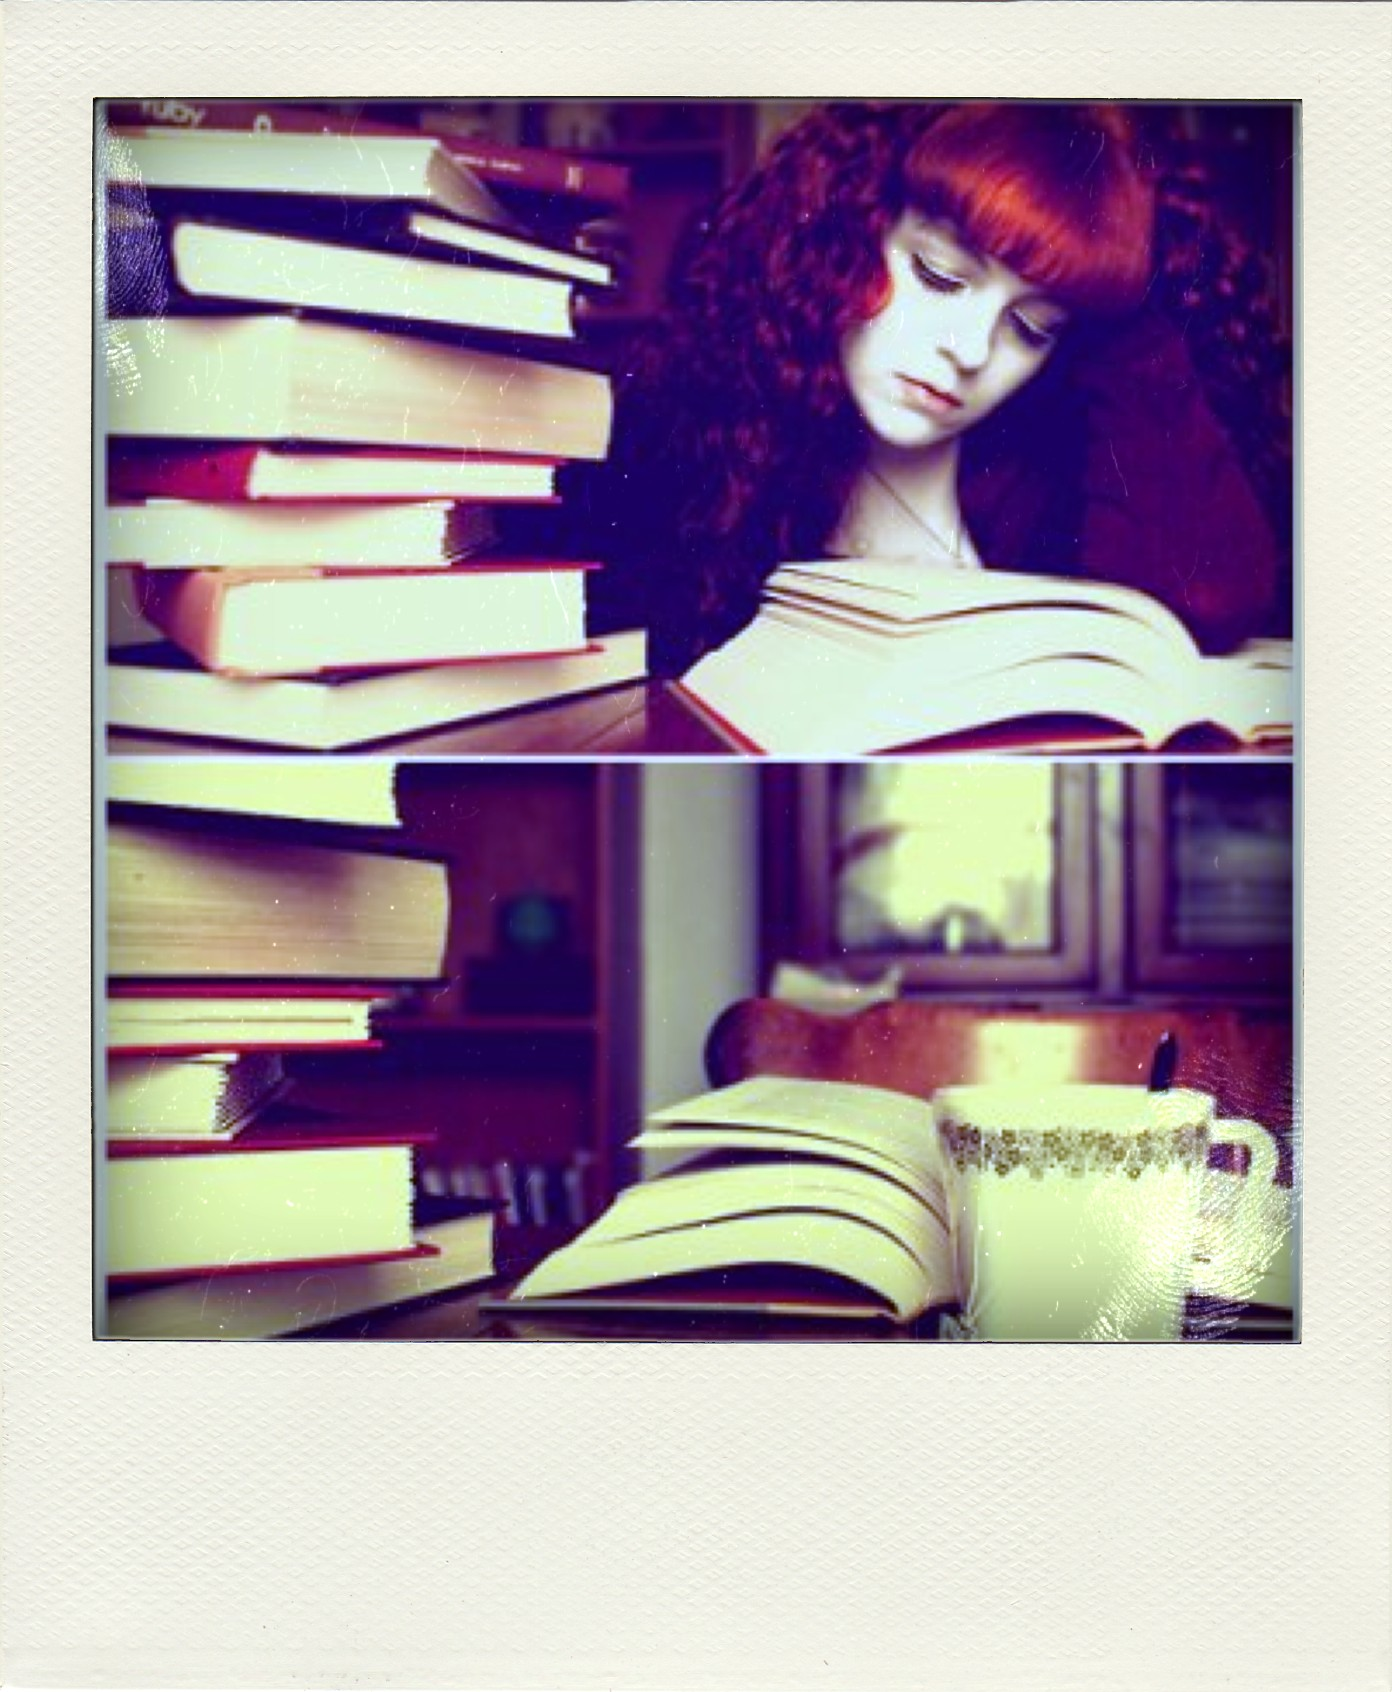 Reading, oh, neverending reading!